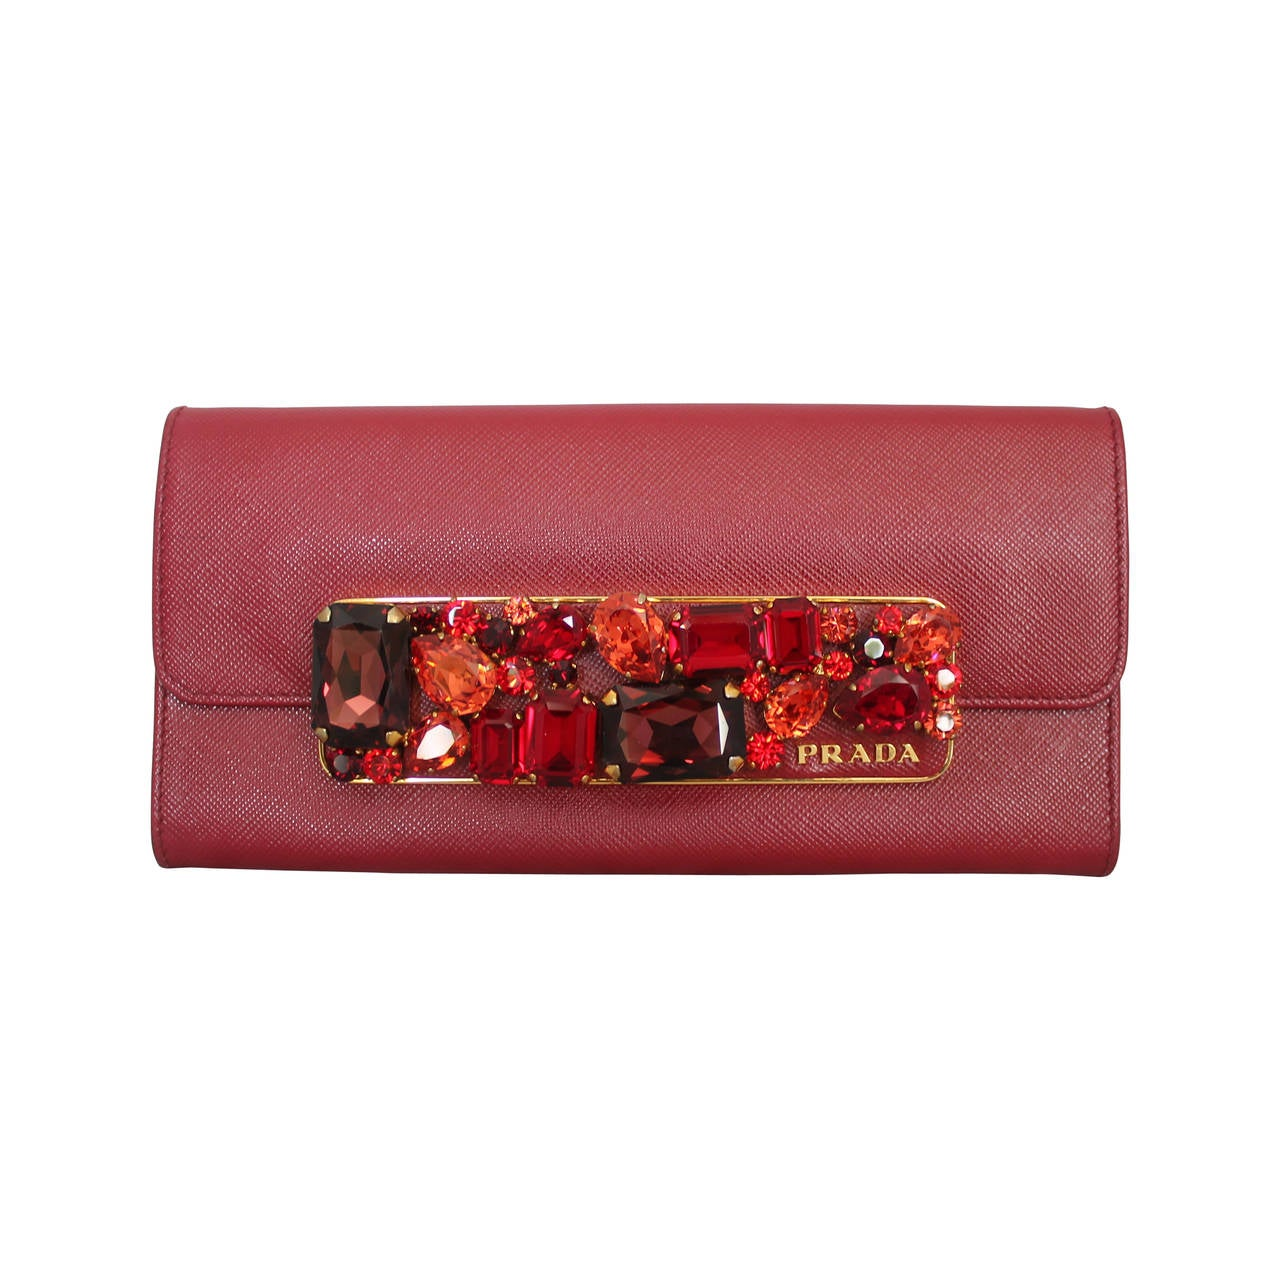 proda bags - Prada Red Saffiano Leather Jewelled Wallet Clutch - rt $1,450 For ...